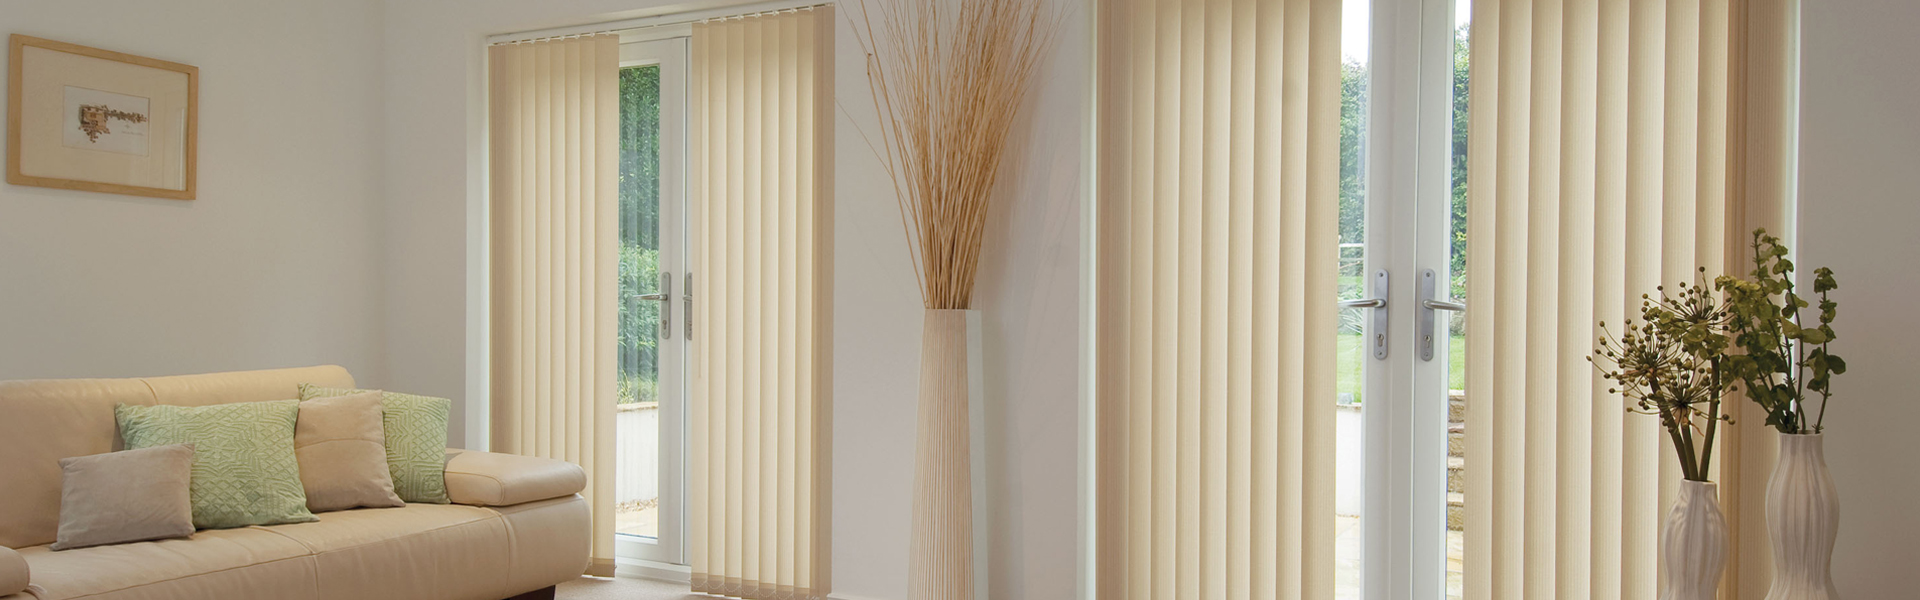 Elegant Blinds And Shutters Tampa Bay | Custom Window Treatments In ...